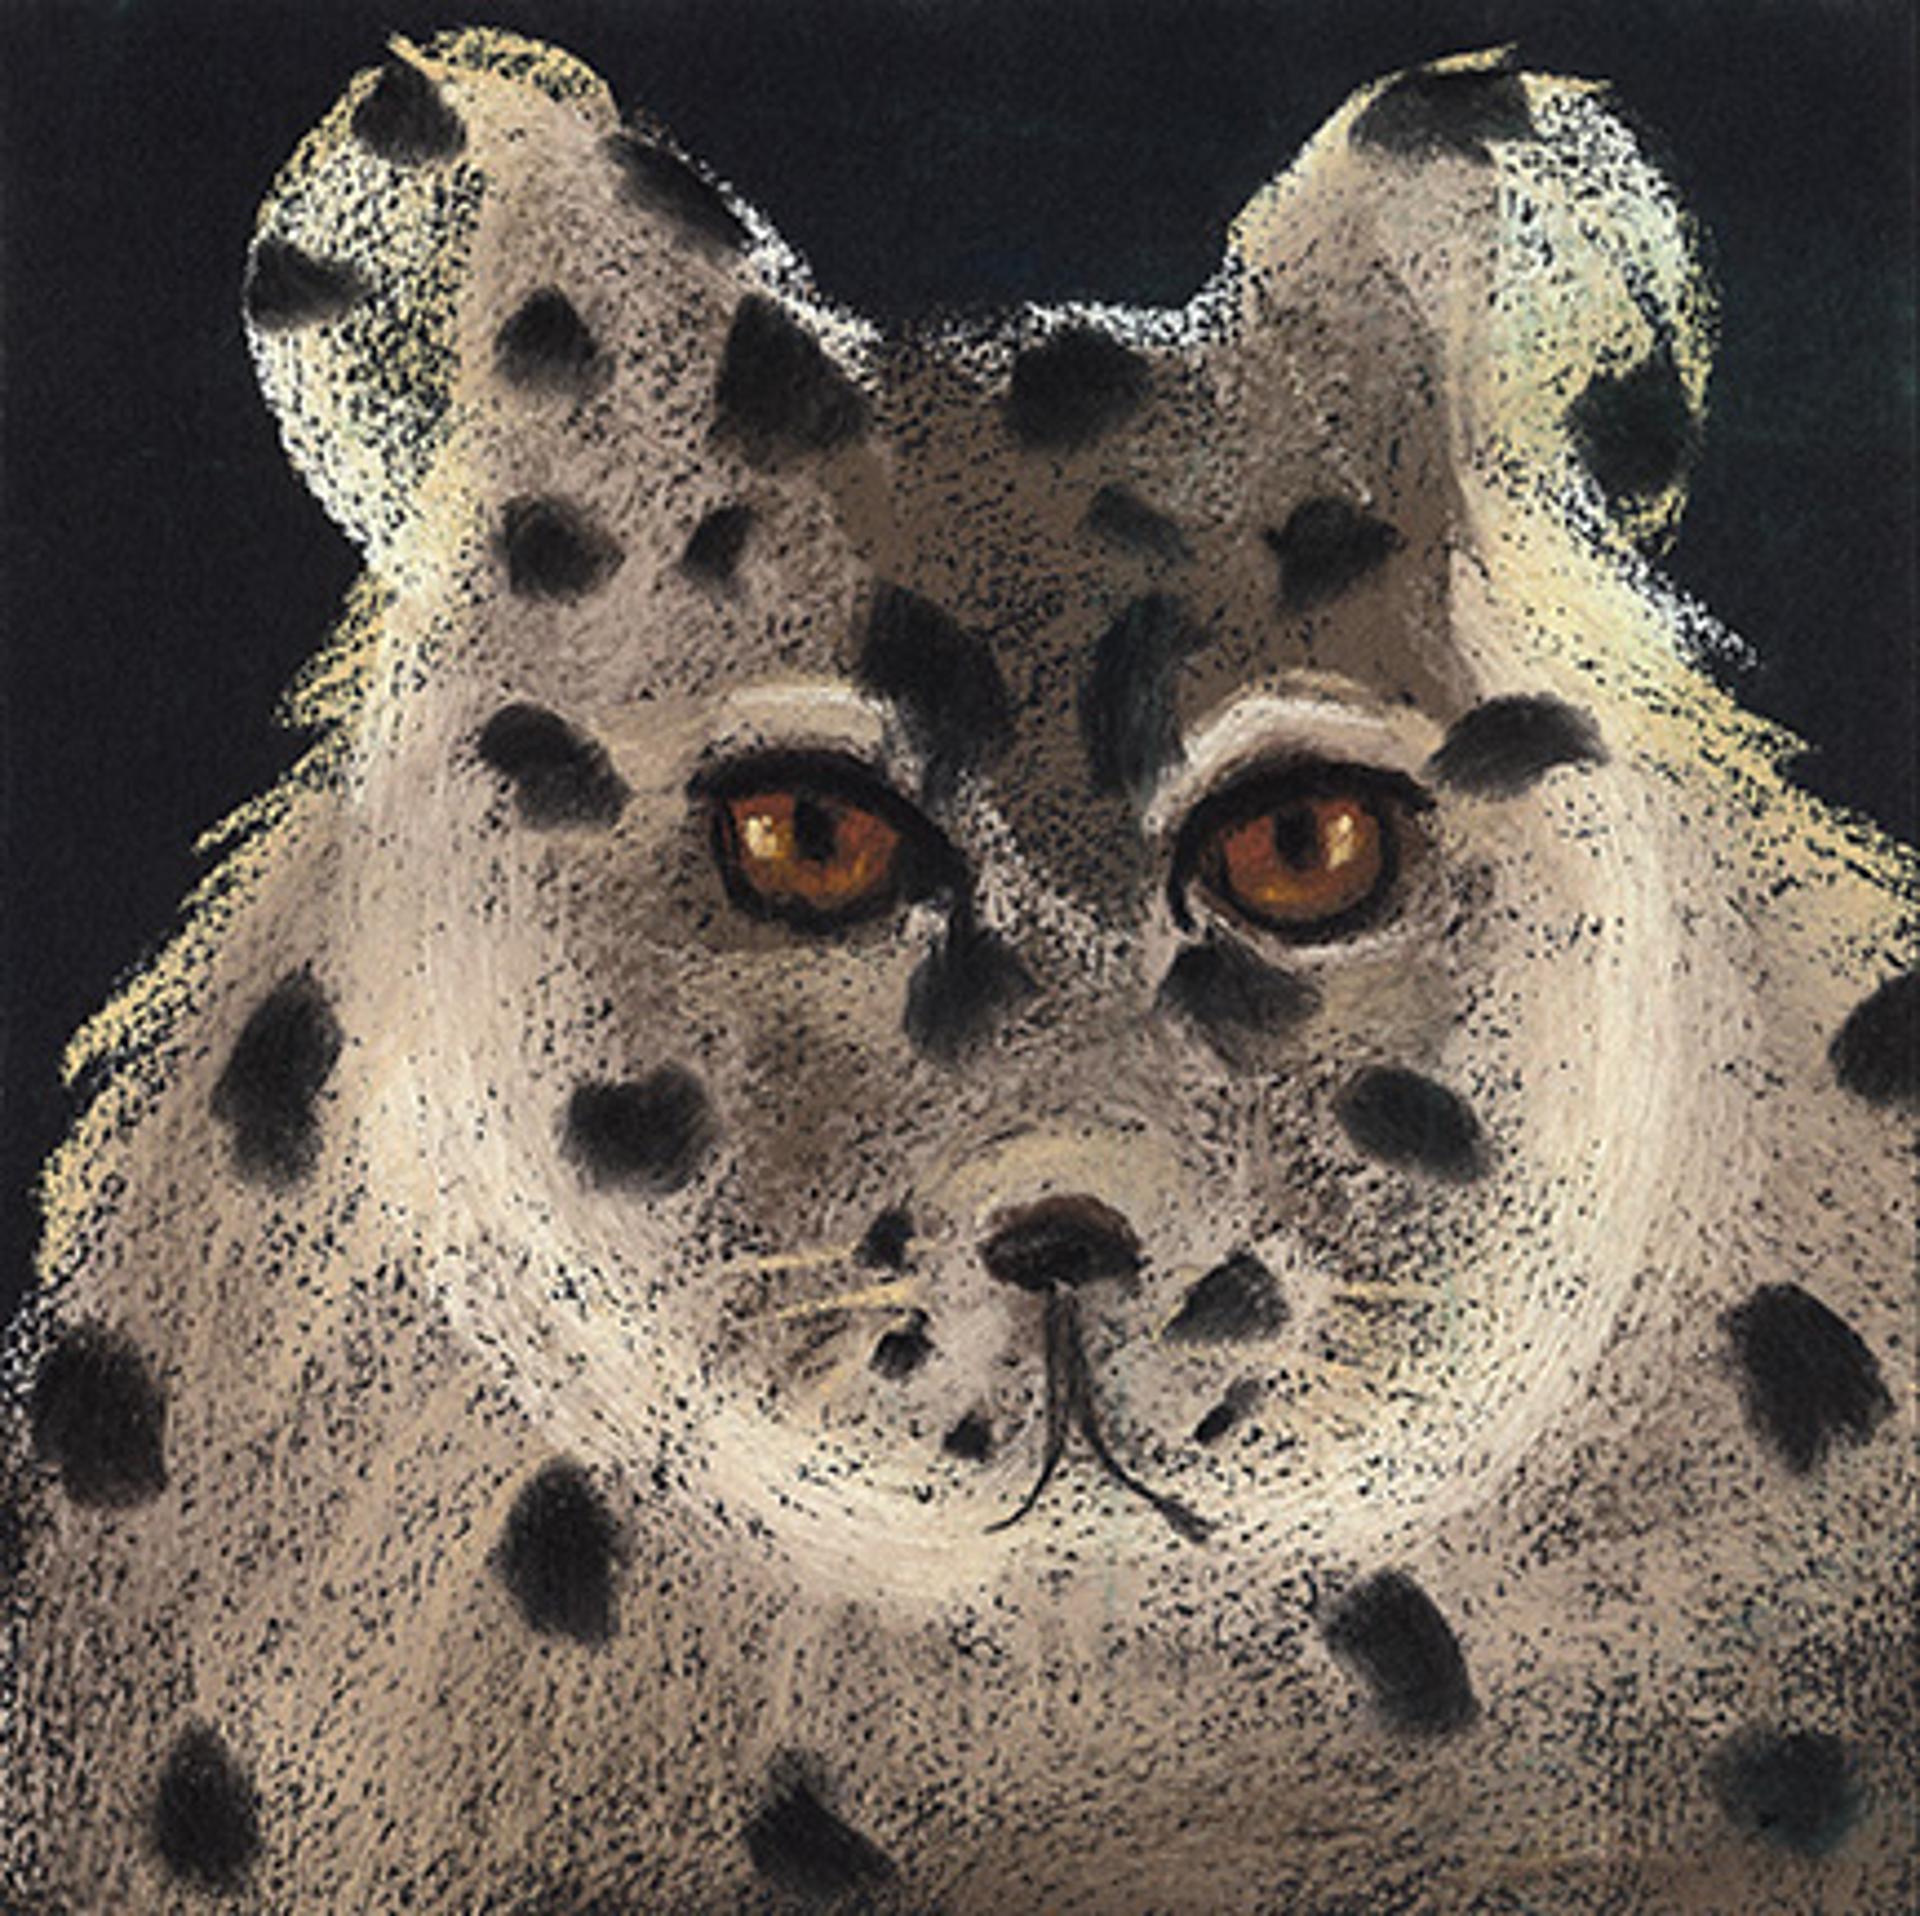 """SNOW LEOPARD - limited edition giclee on paper w/frame size of 21""""x21"""" by Carole LaRoche"""